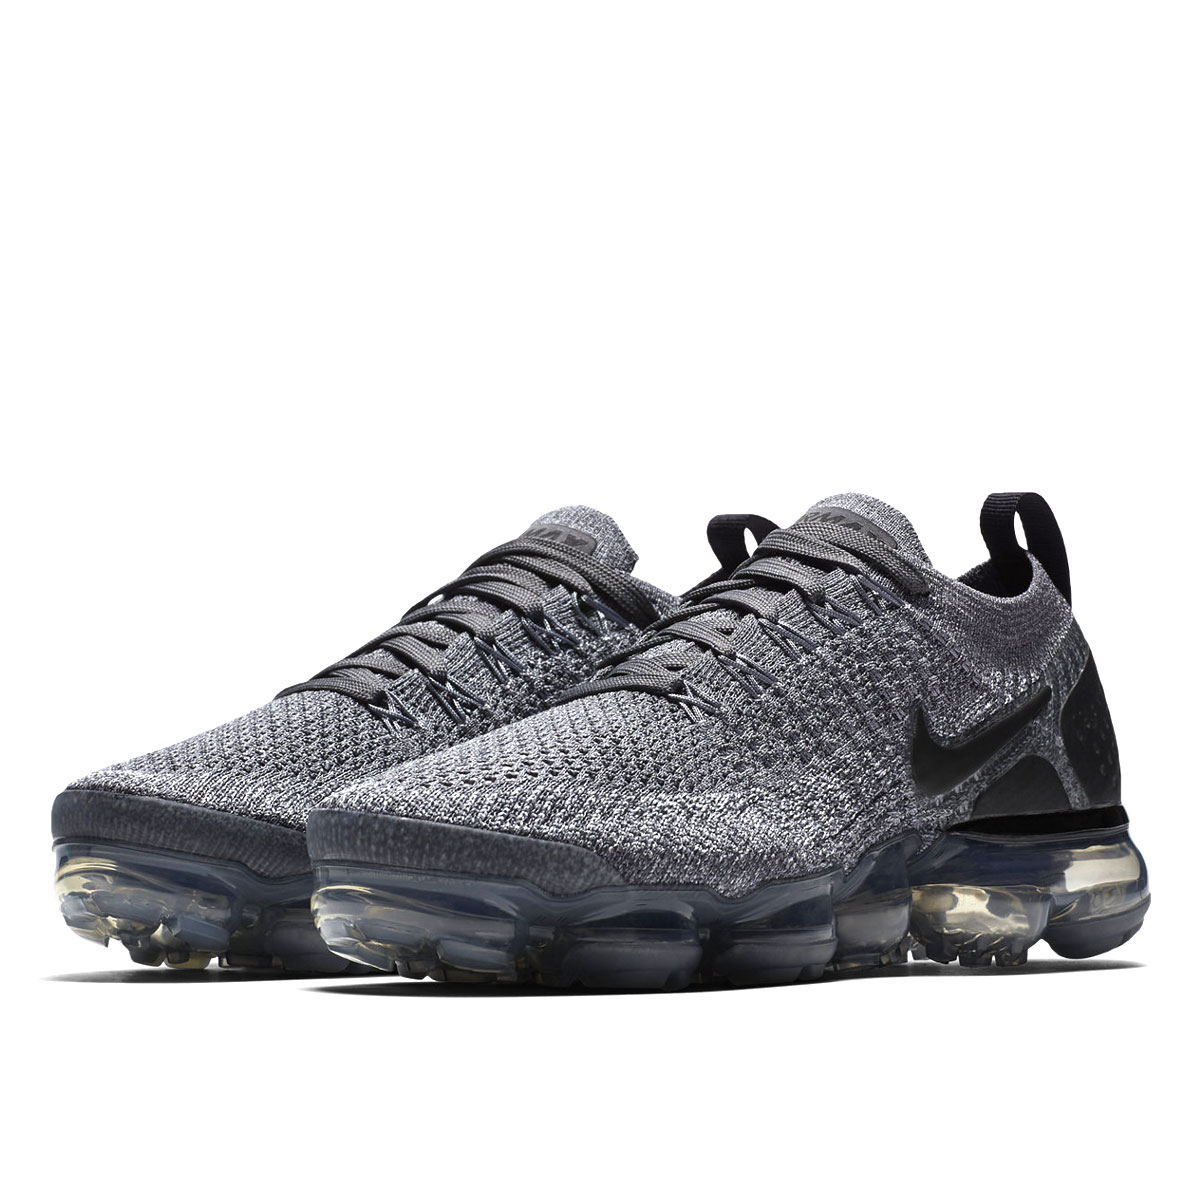 detailed pictures aa767 0e253 NIKE WMNS AIR VAPORMAX FLYKNIT 2 Nike women vapor max fried food knit DARK  GREY/WOLF GREY 942,843-002